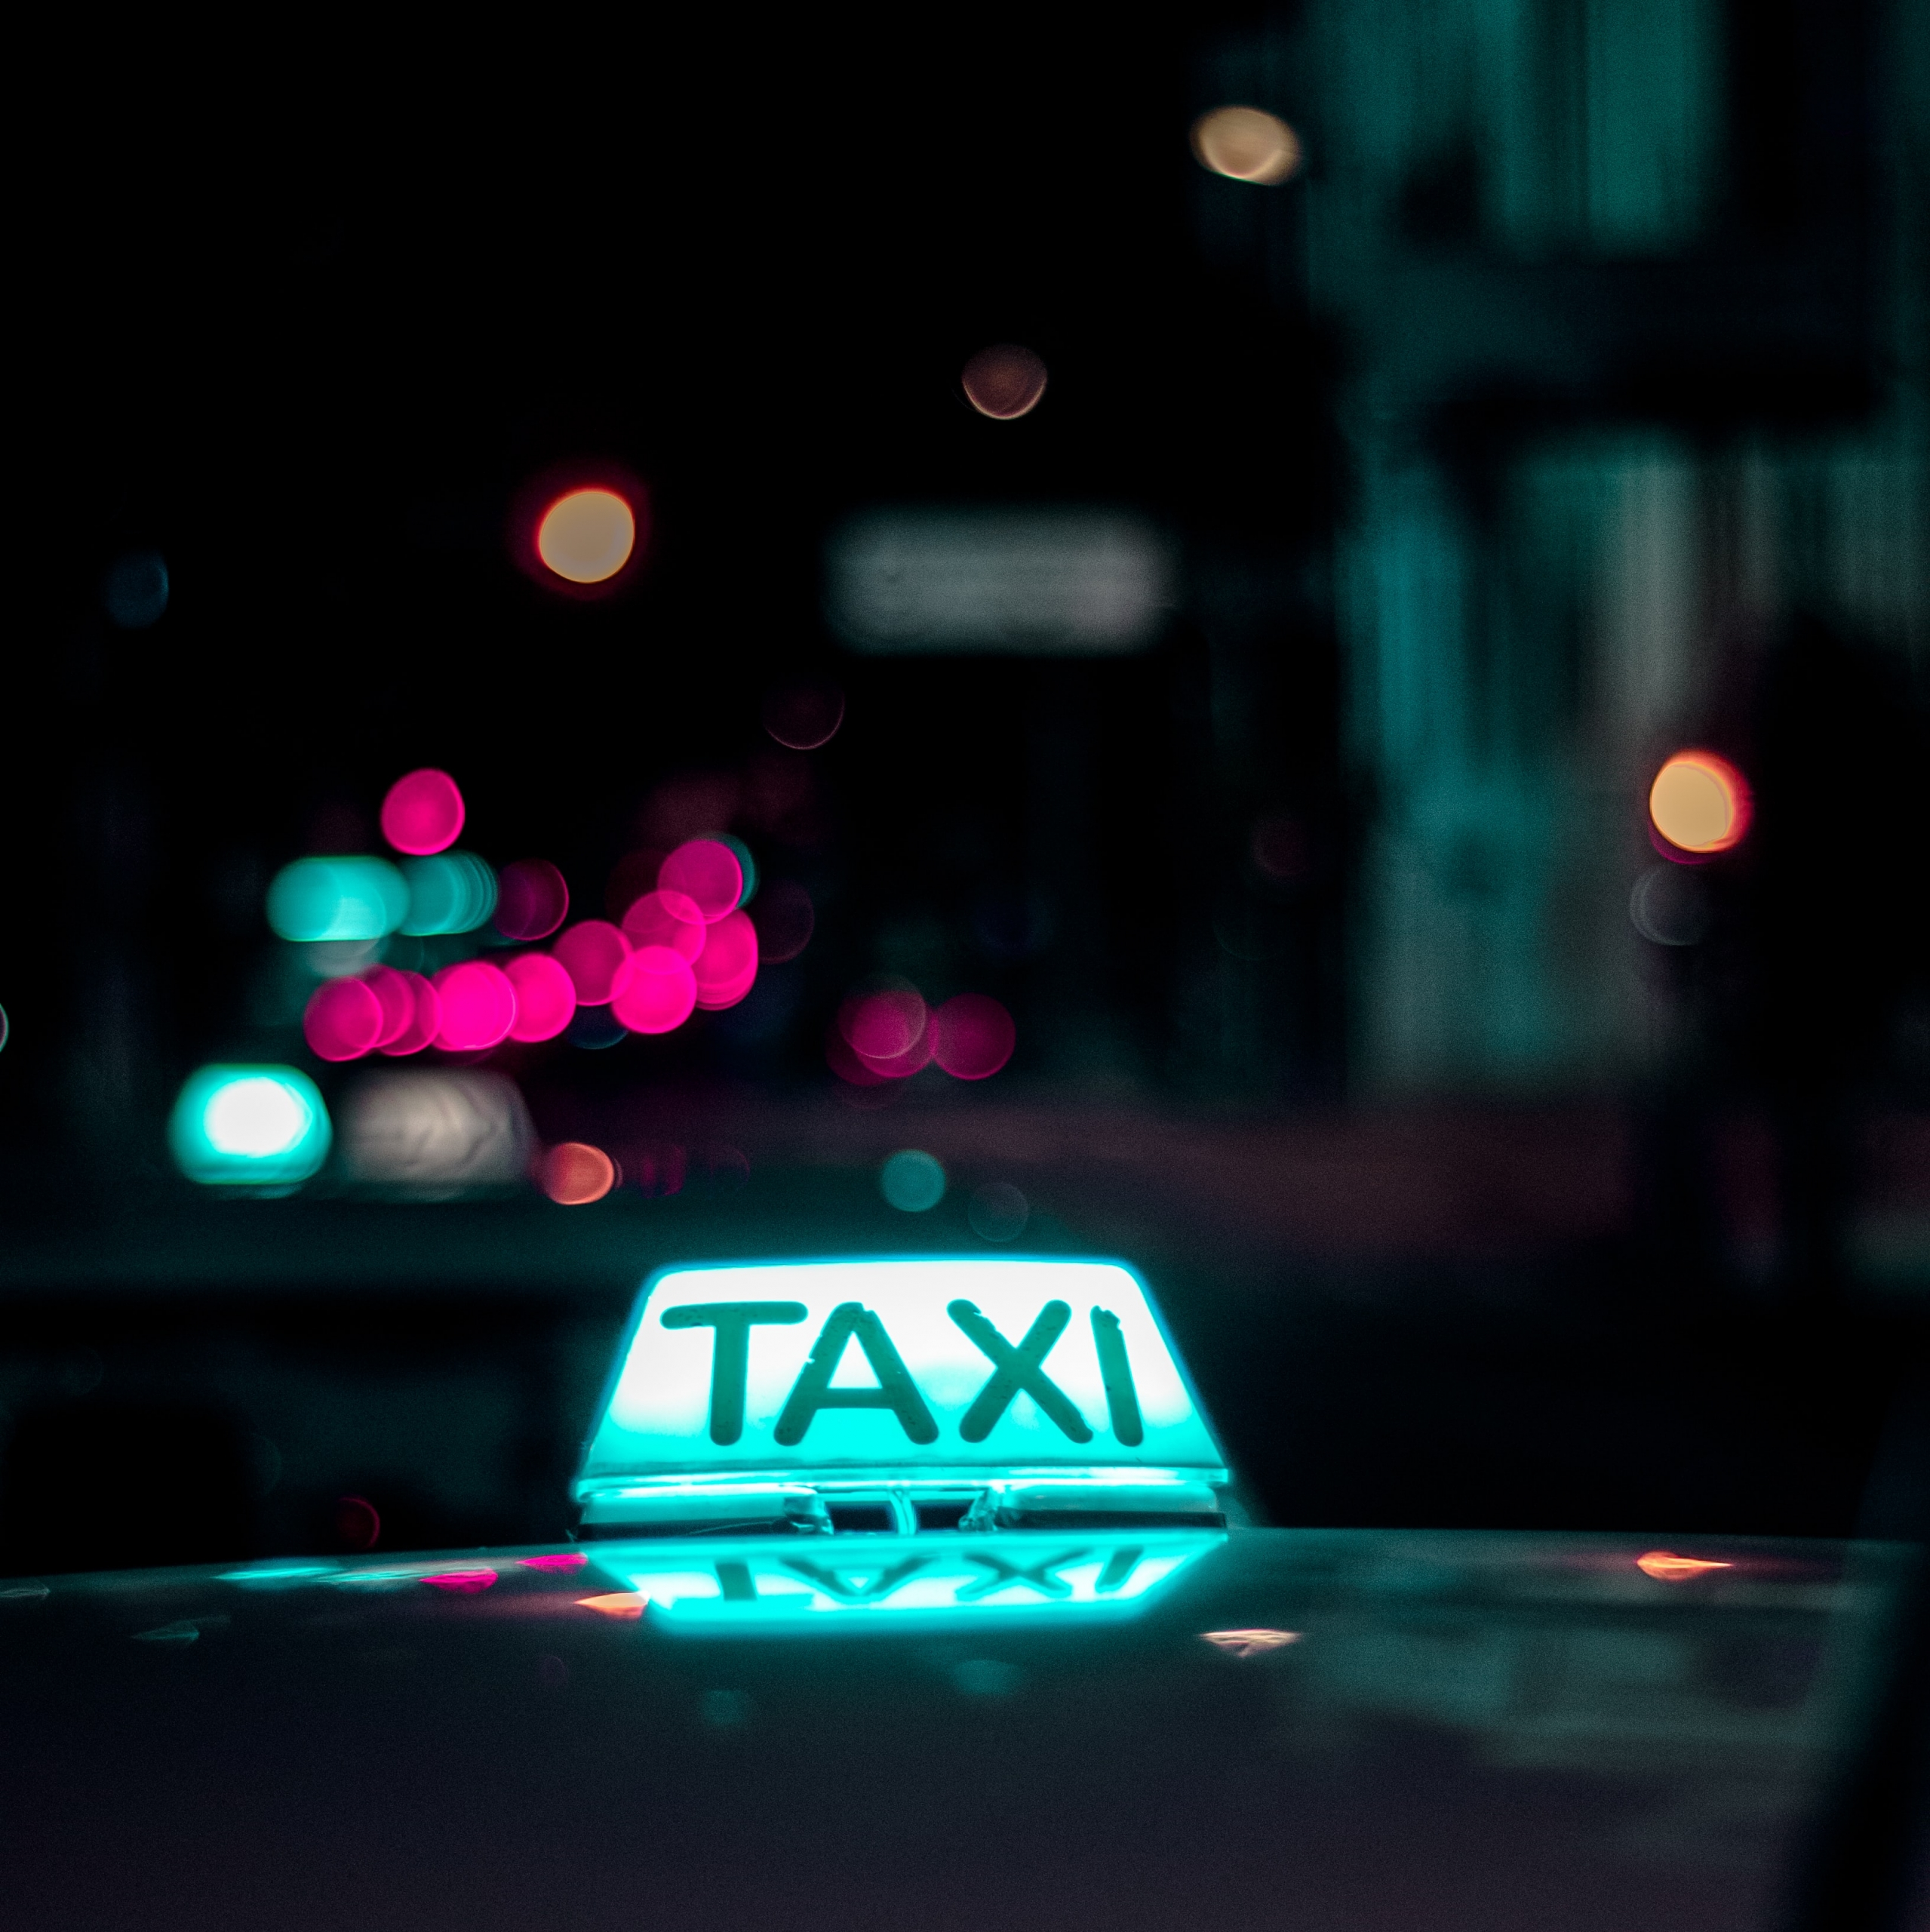 taxi in dark city with neon lights